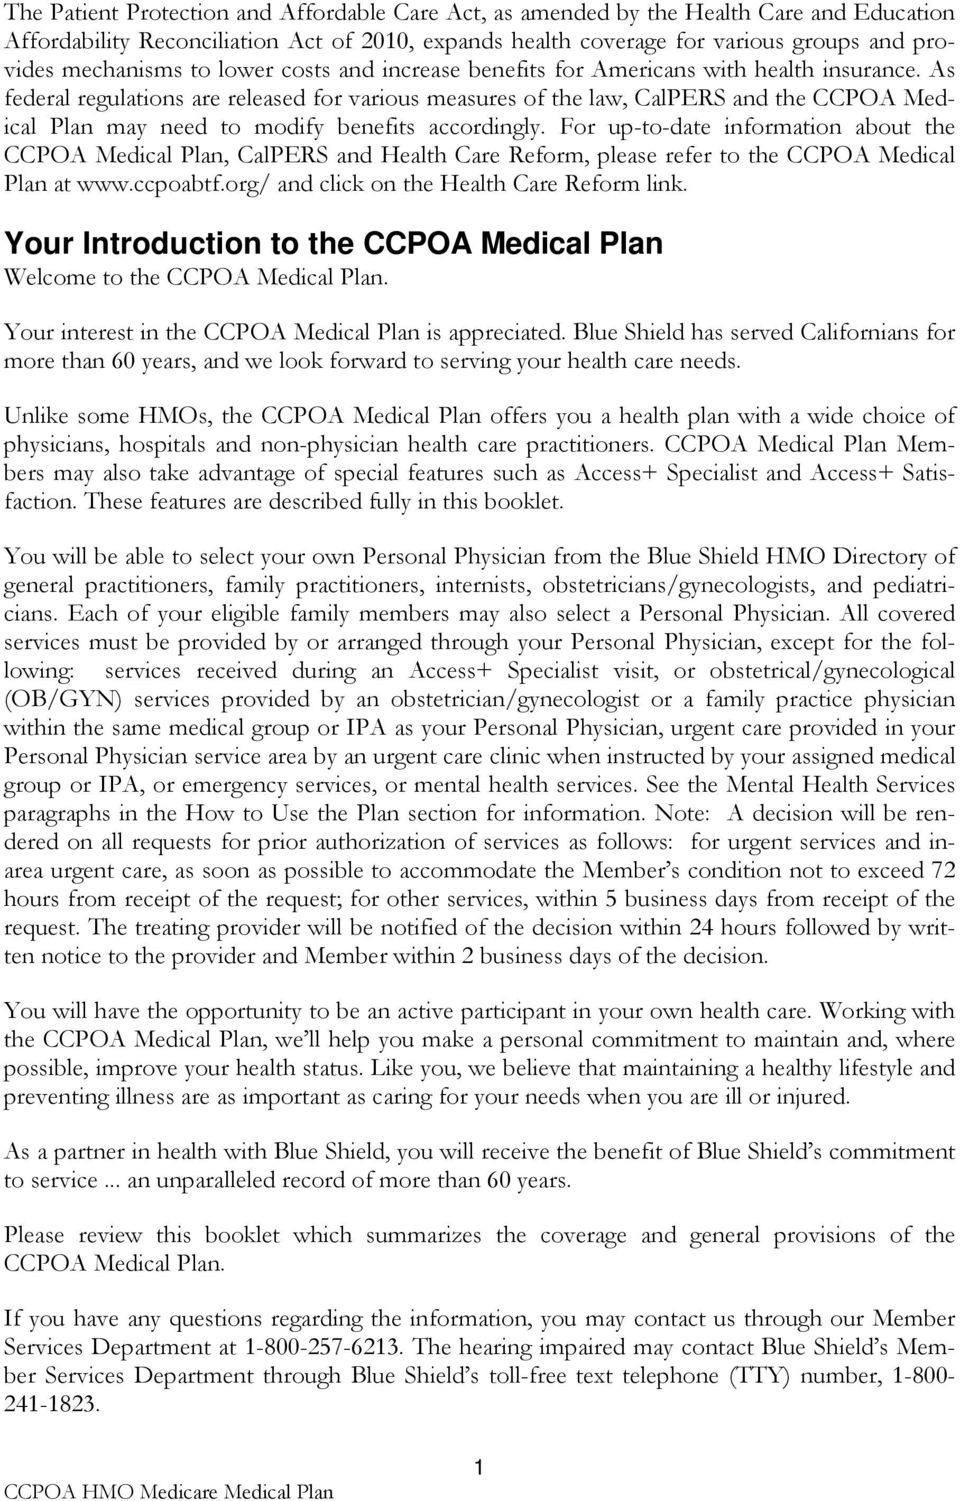 CCPOA Medical Plan  Access+ HMO  Evidence of Coverage and